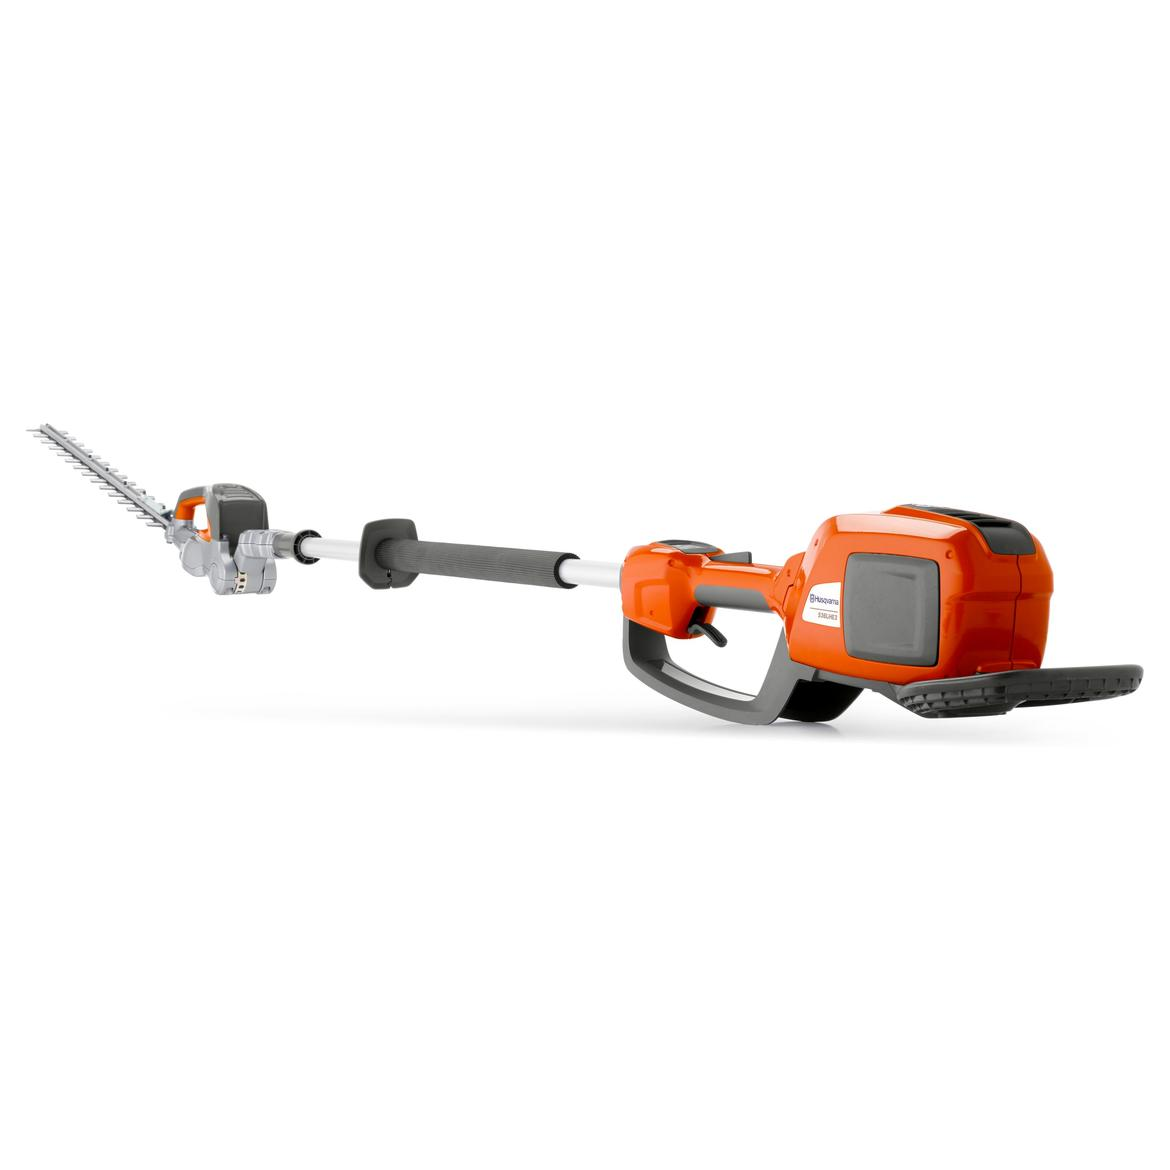 Husqvarna 536lihe3 36v cordless pole hedge trimmer kit for Garden tools accessories